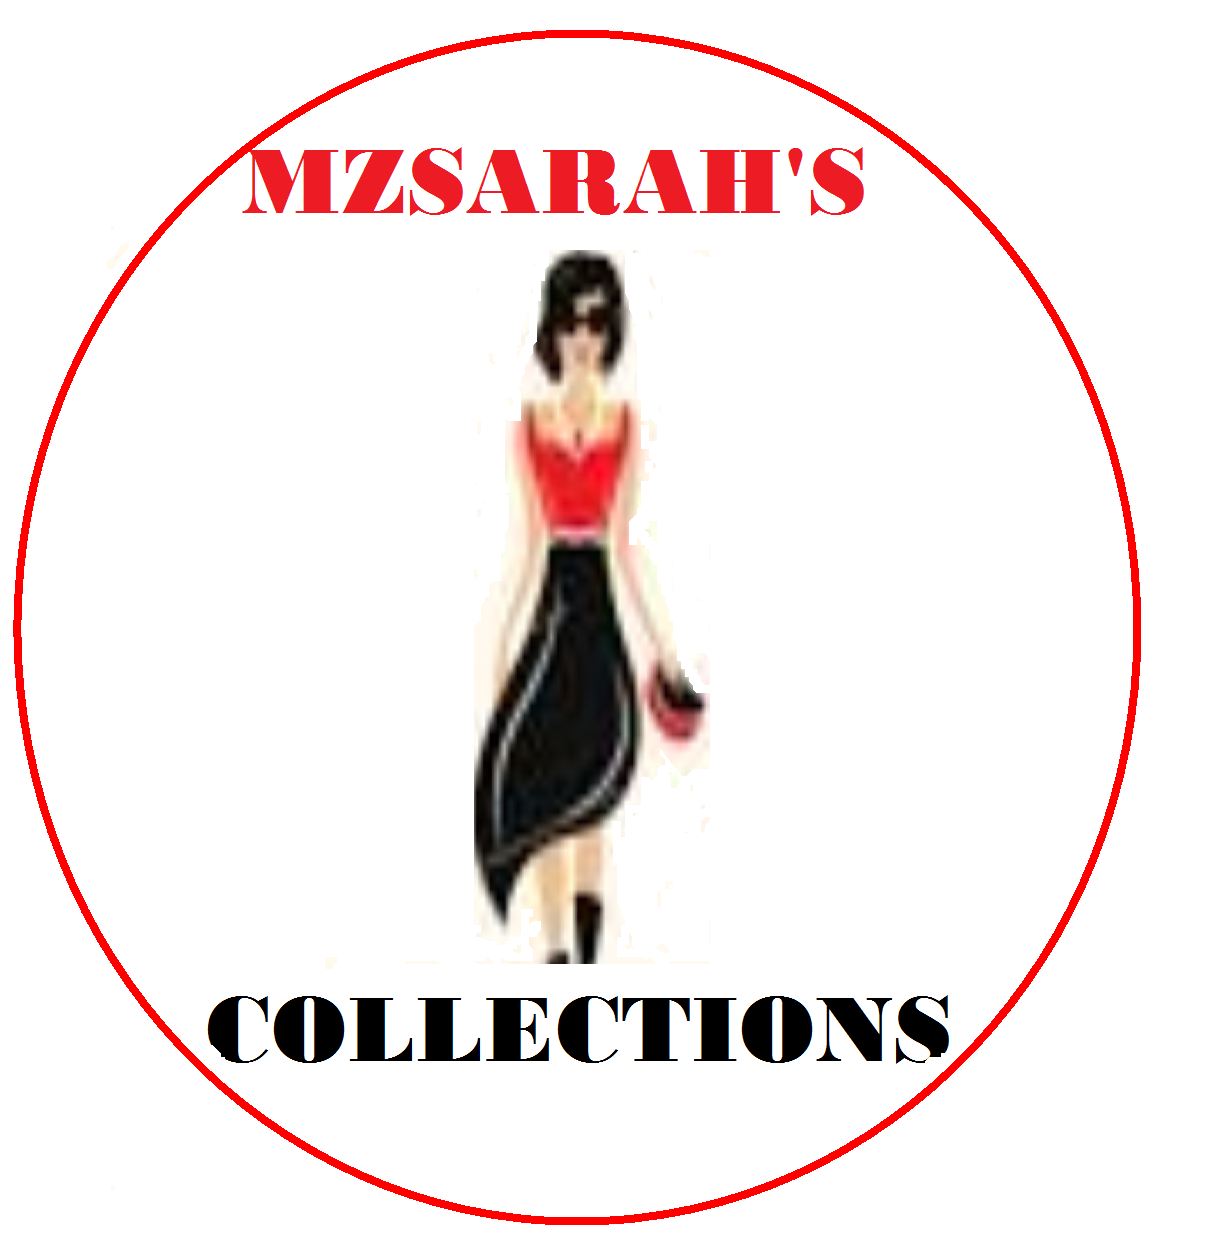 mzsarah's collections